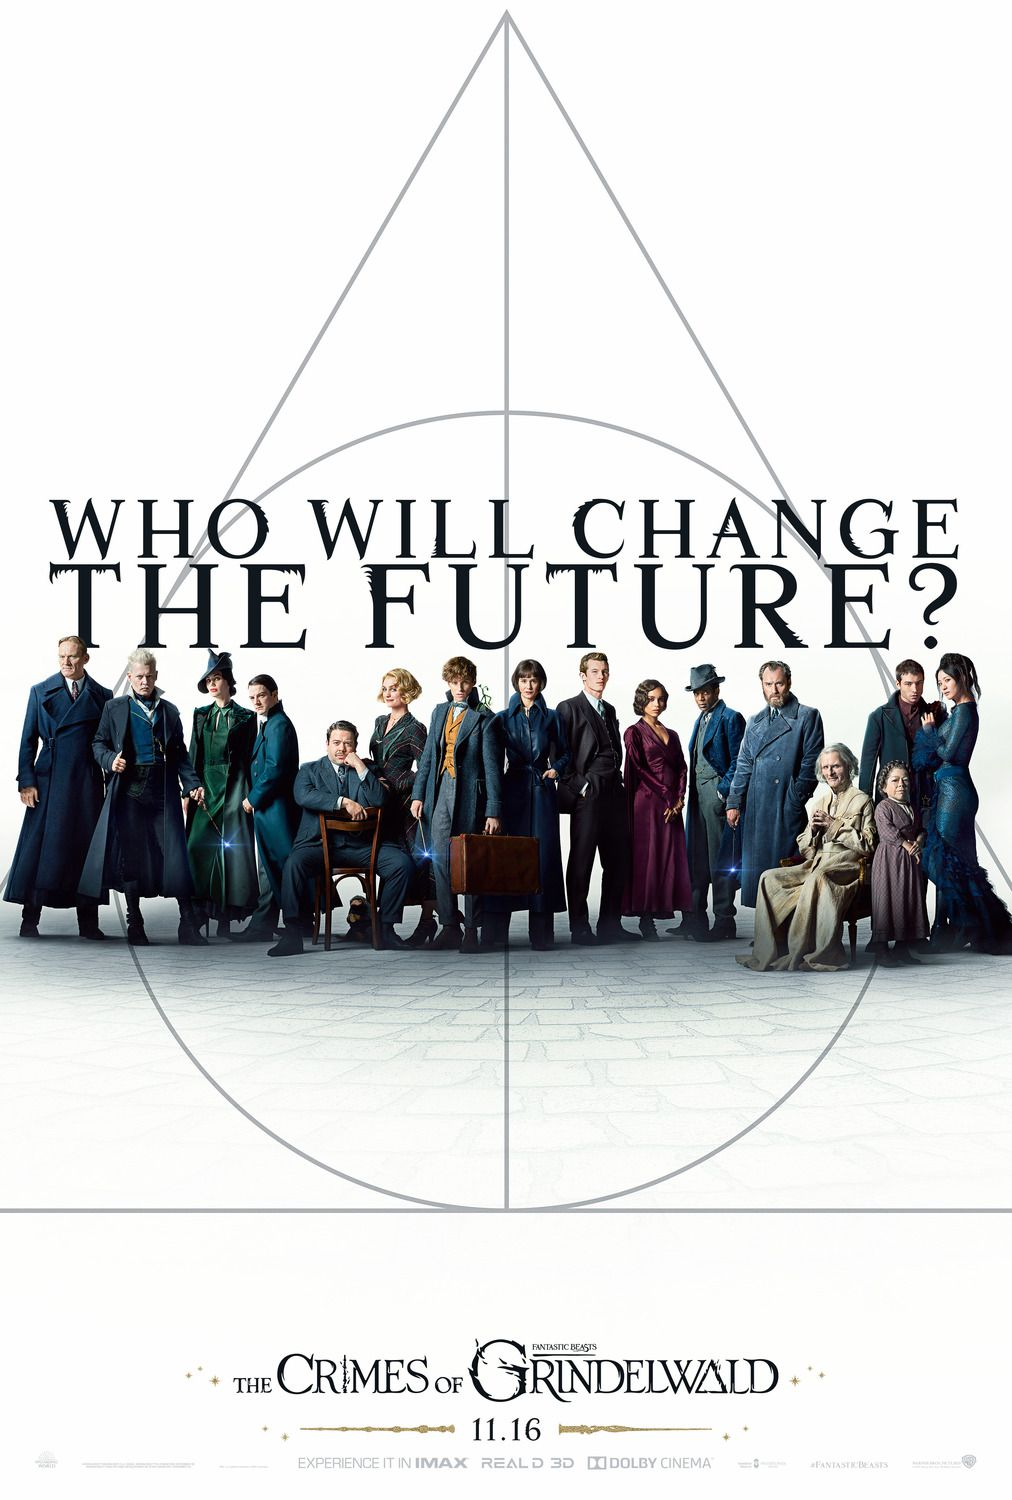 Fantastic Beasts the Crimes of Grindelwald 2018 Eddie Redmayne, Johnny Depp, Ezra Miller, Katherine Waterston fantasy film poster